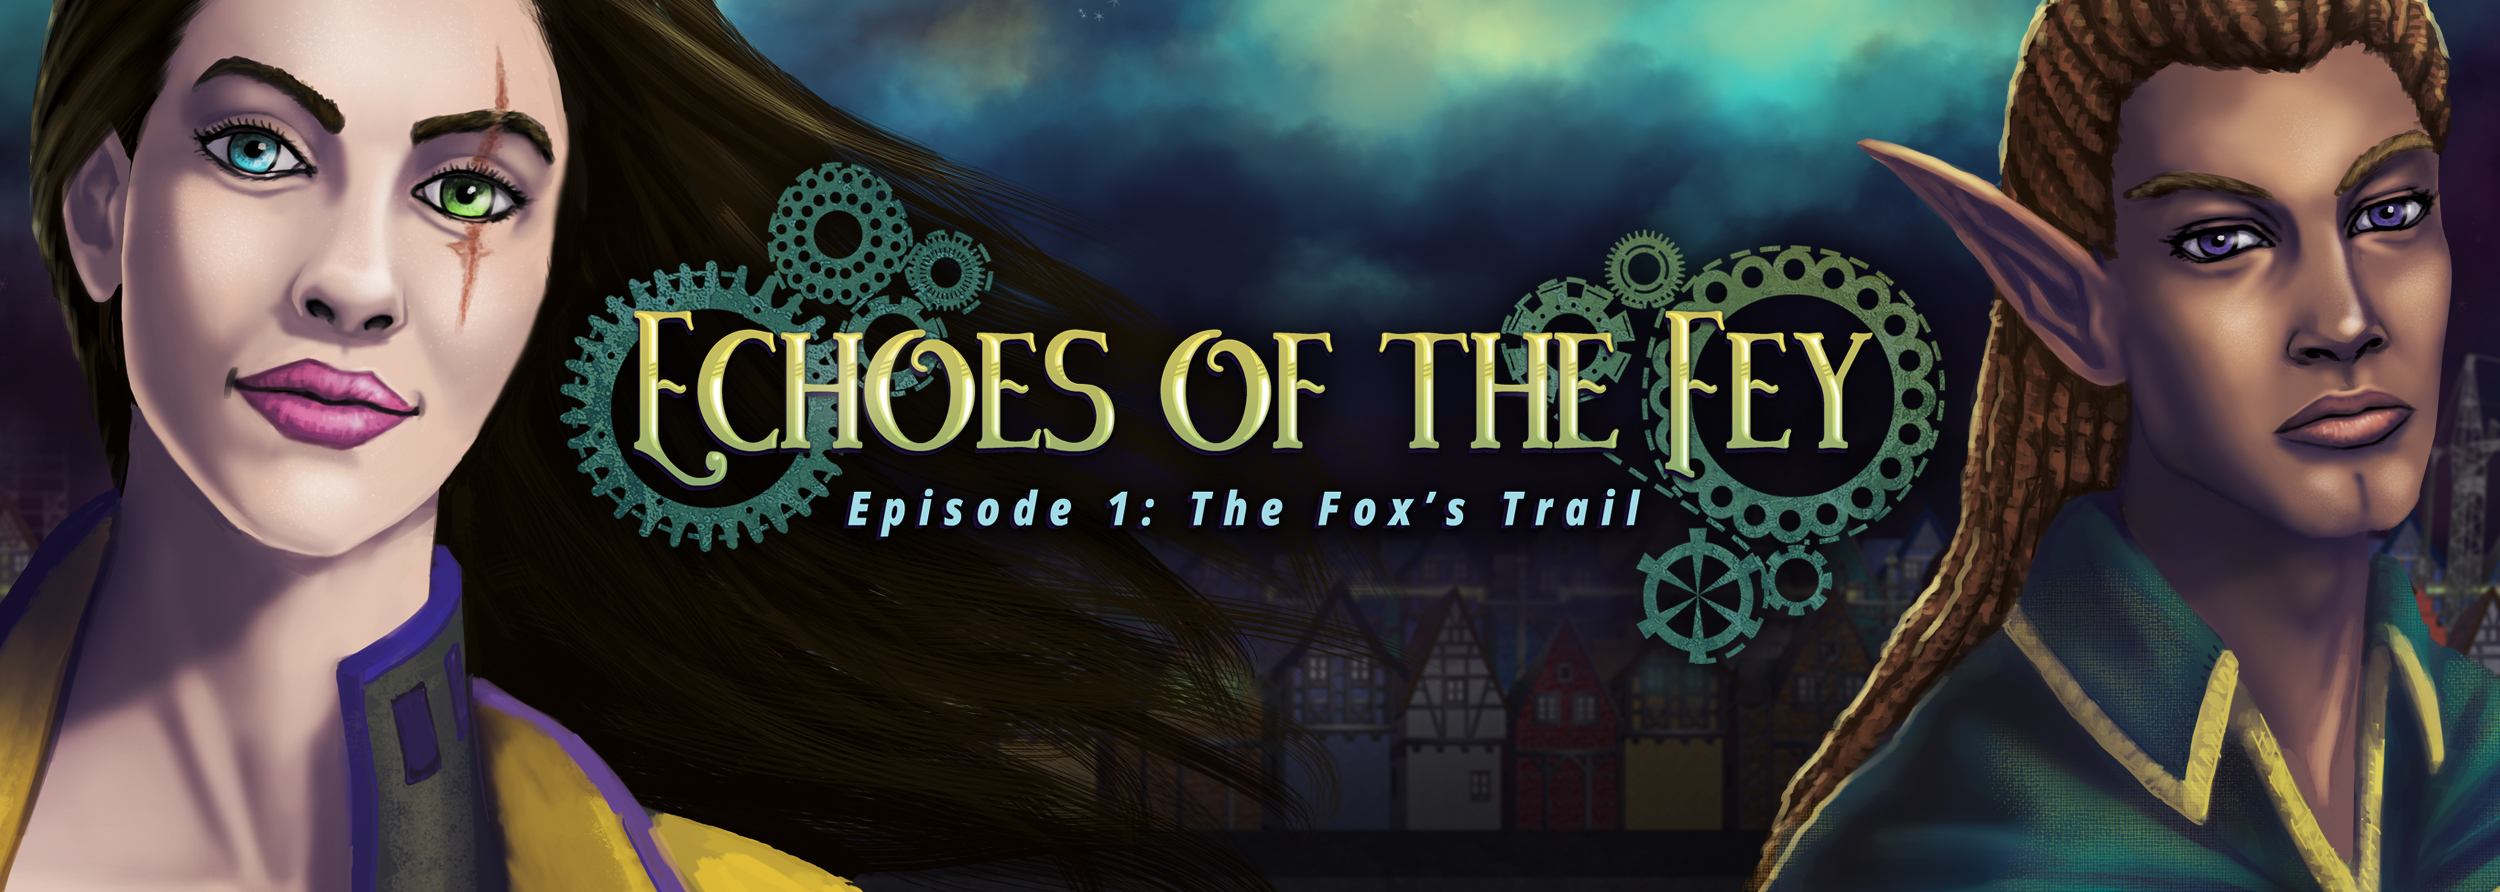 Echoes of the Fey Episode 1: The Fox's Trail